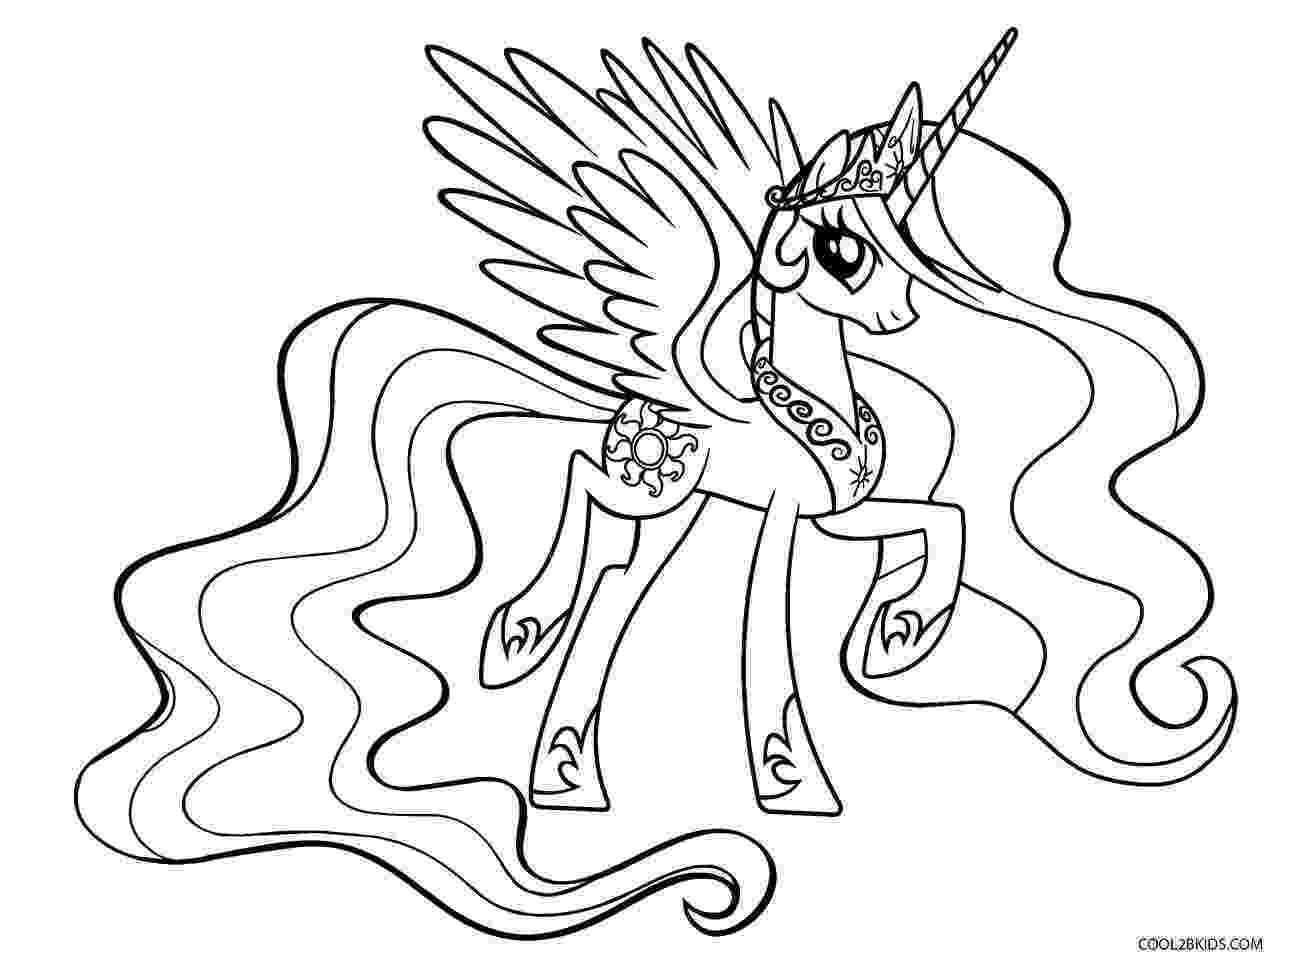 my little pony picture to color free my little pony kids printables diy thought my to color pony little picture